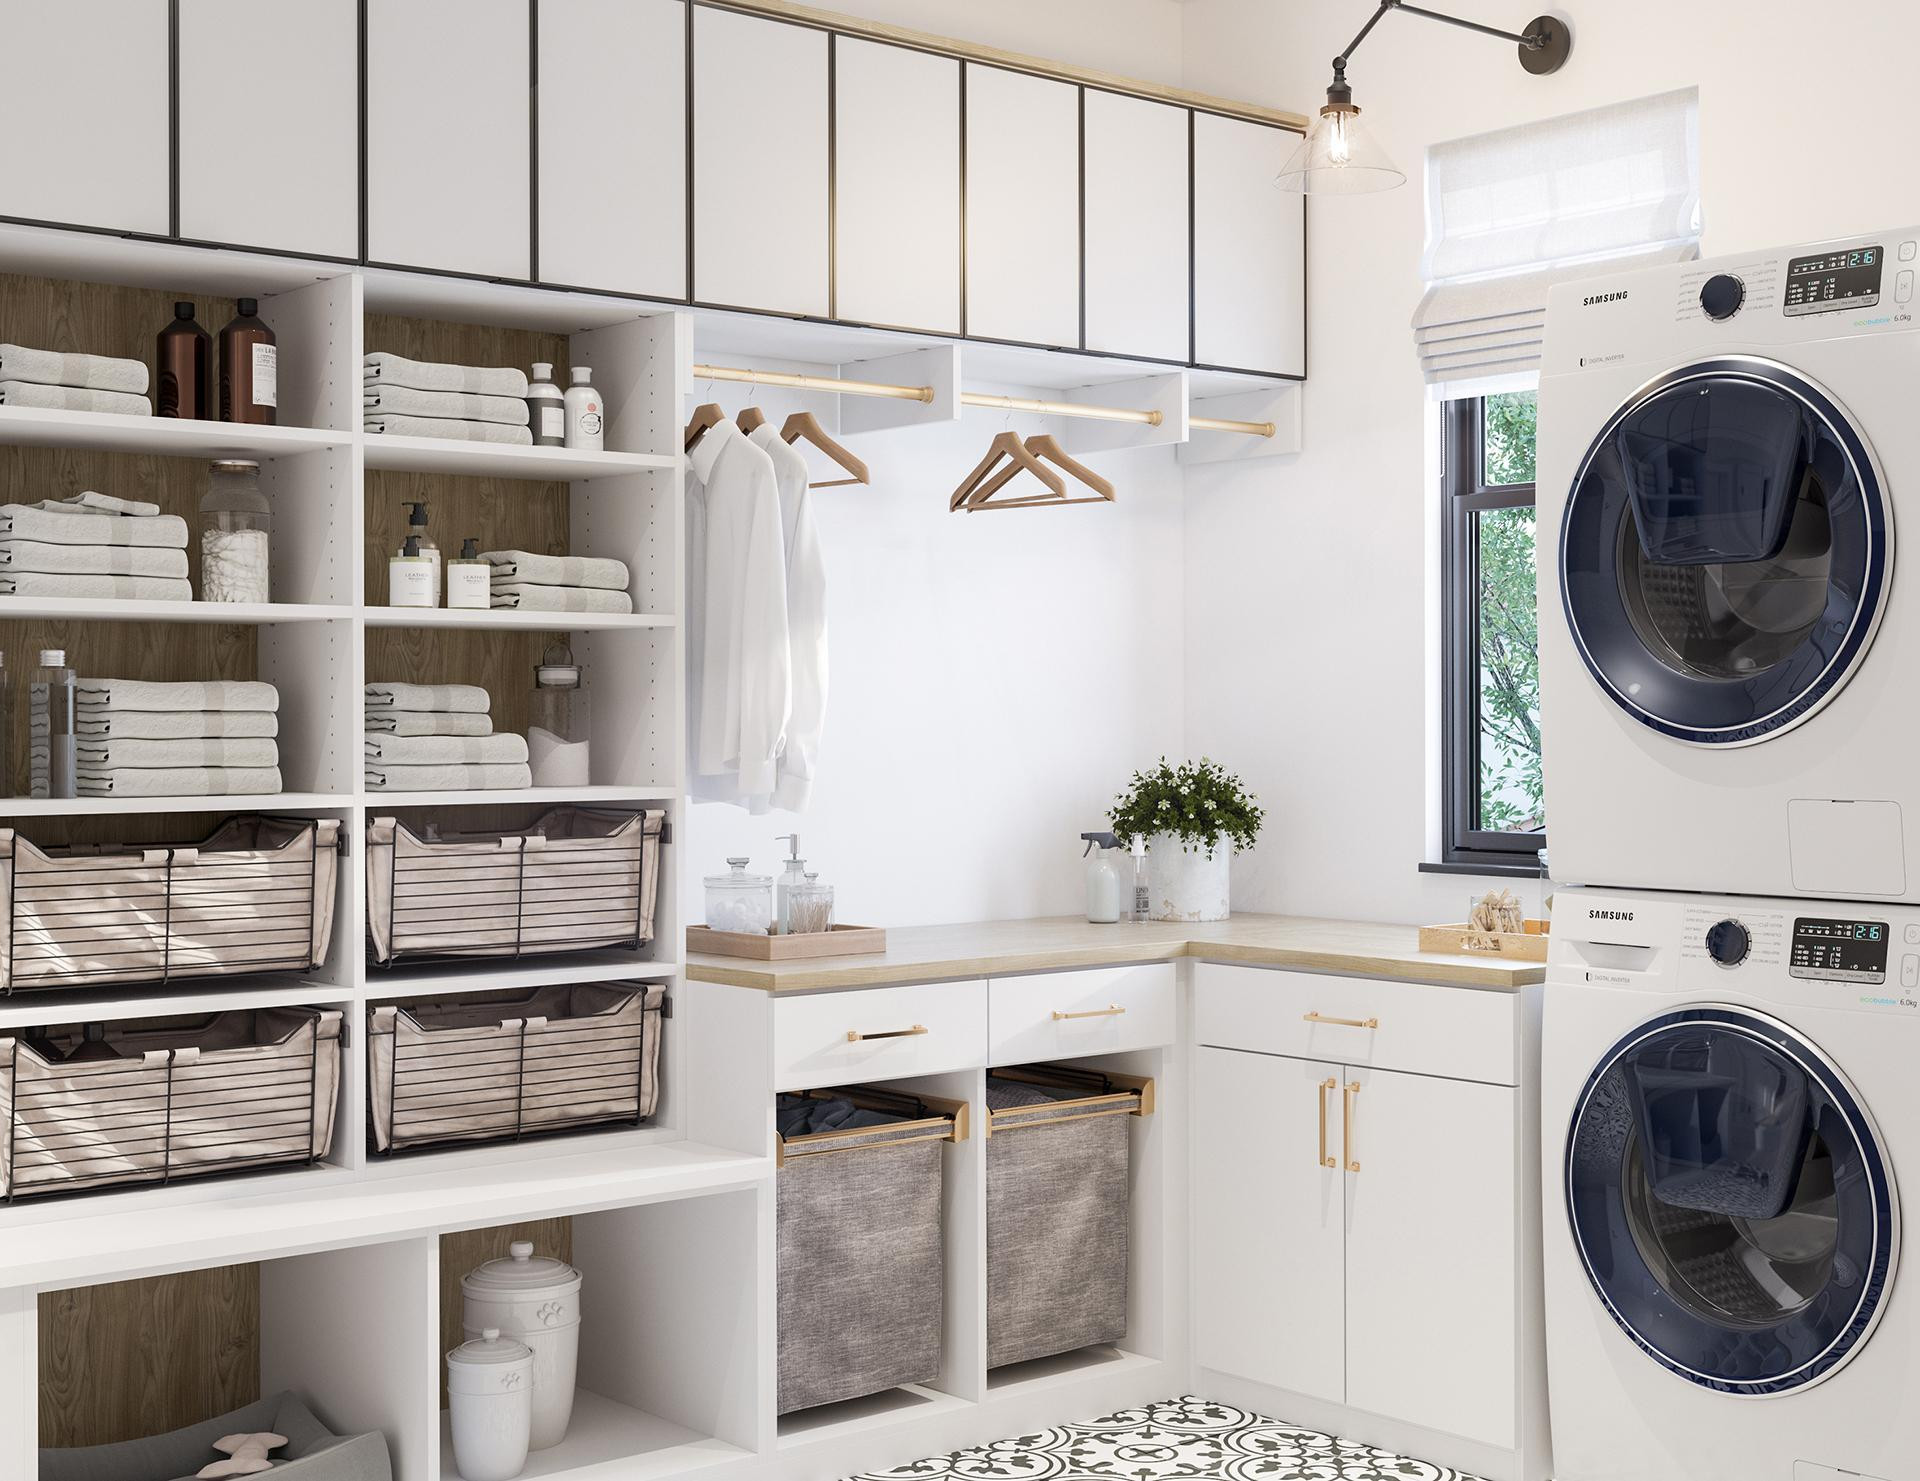 Best ideas about Laundry Room Storage Ideas . Save or Pin Laundry Room Cabinets & Storage Ideas by California Closets Now.